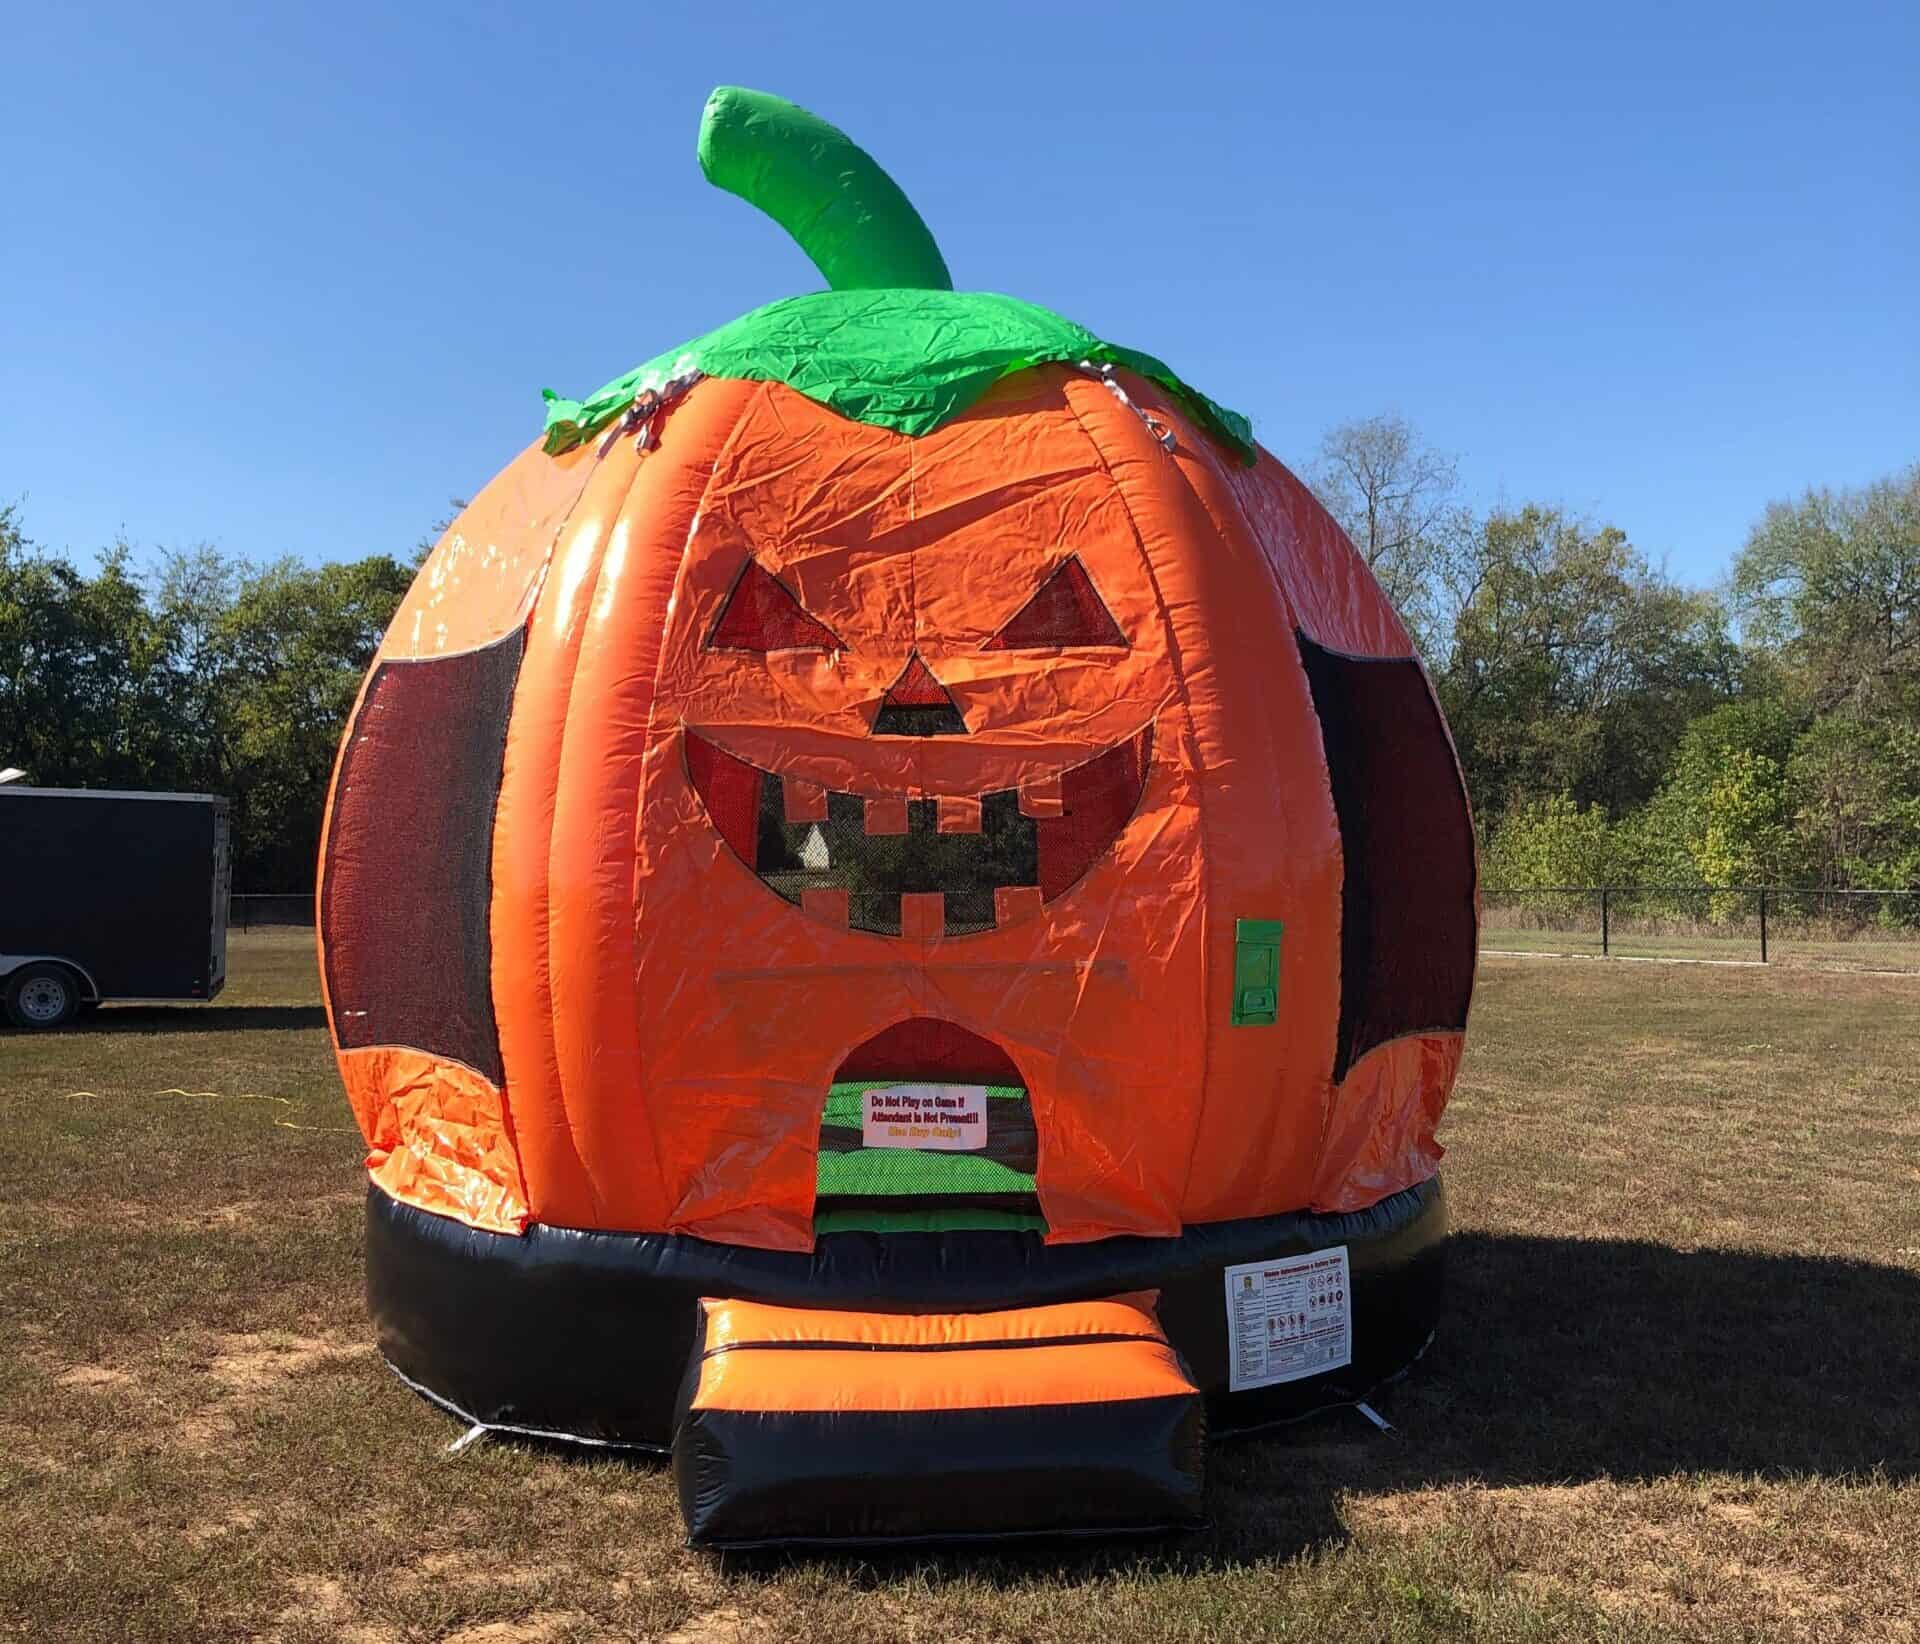 Pumpkin Bounce House Rental in Nashville, TN from It's Time 2 Bounce